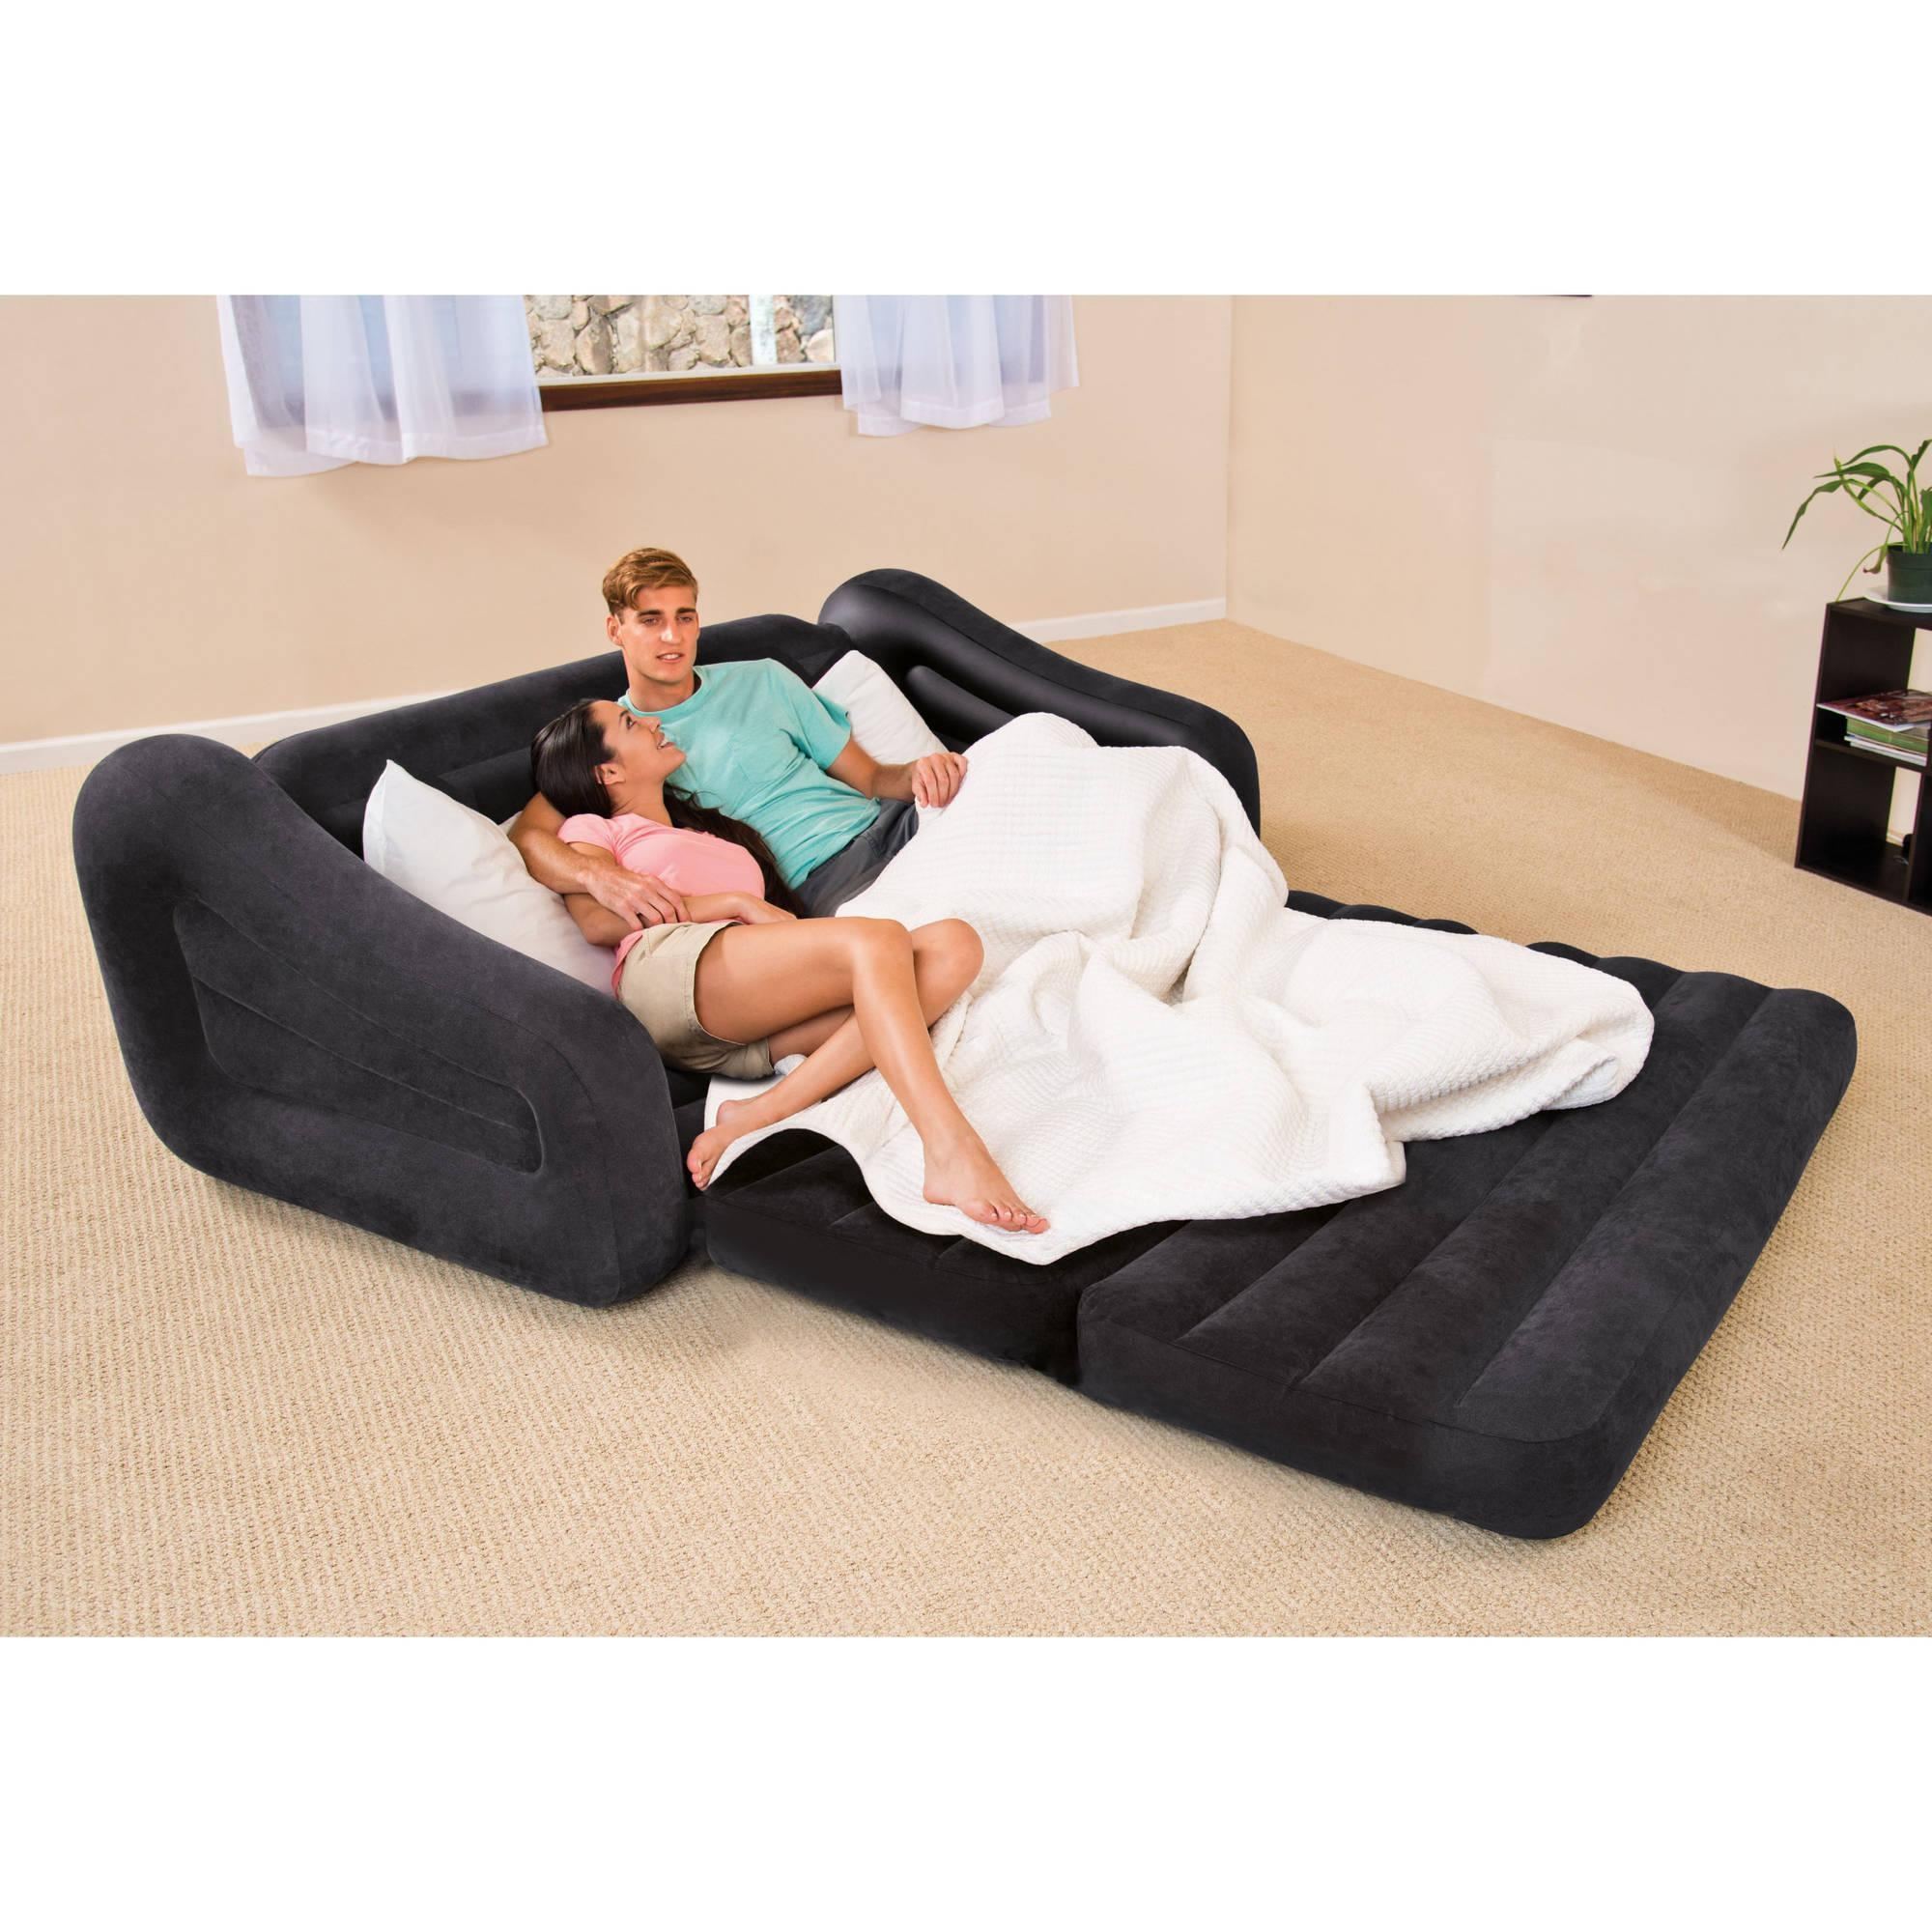 Intex Queen Inflatable Pull Out Sofa Bed – Walmart For Intex Pull Out Chairs (View 10 of 20)